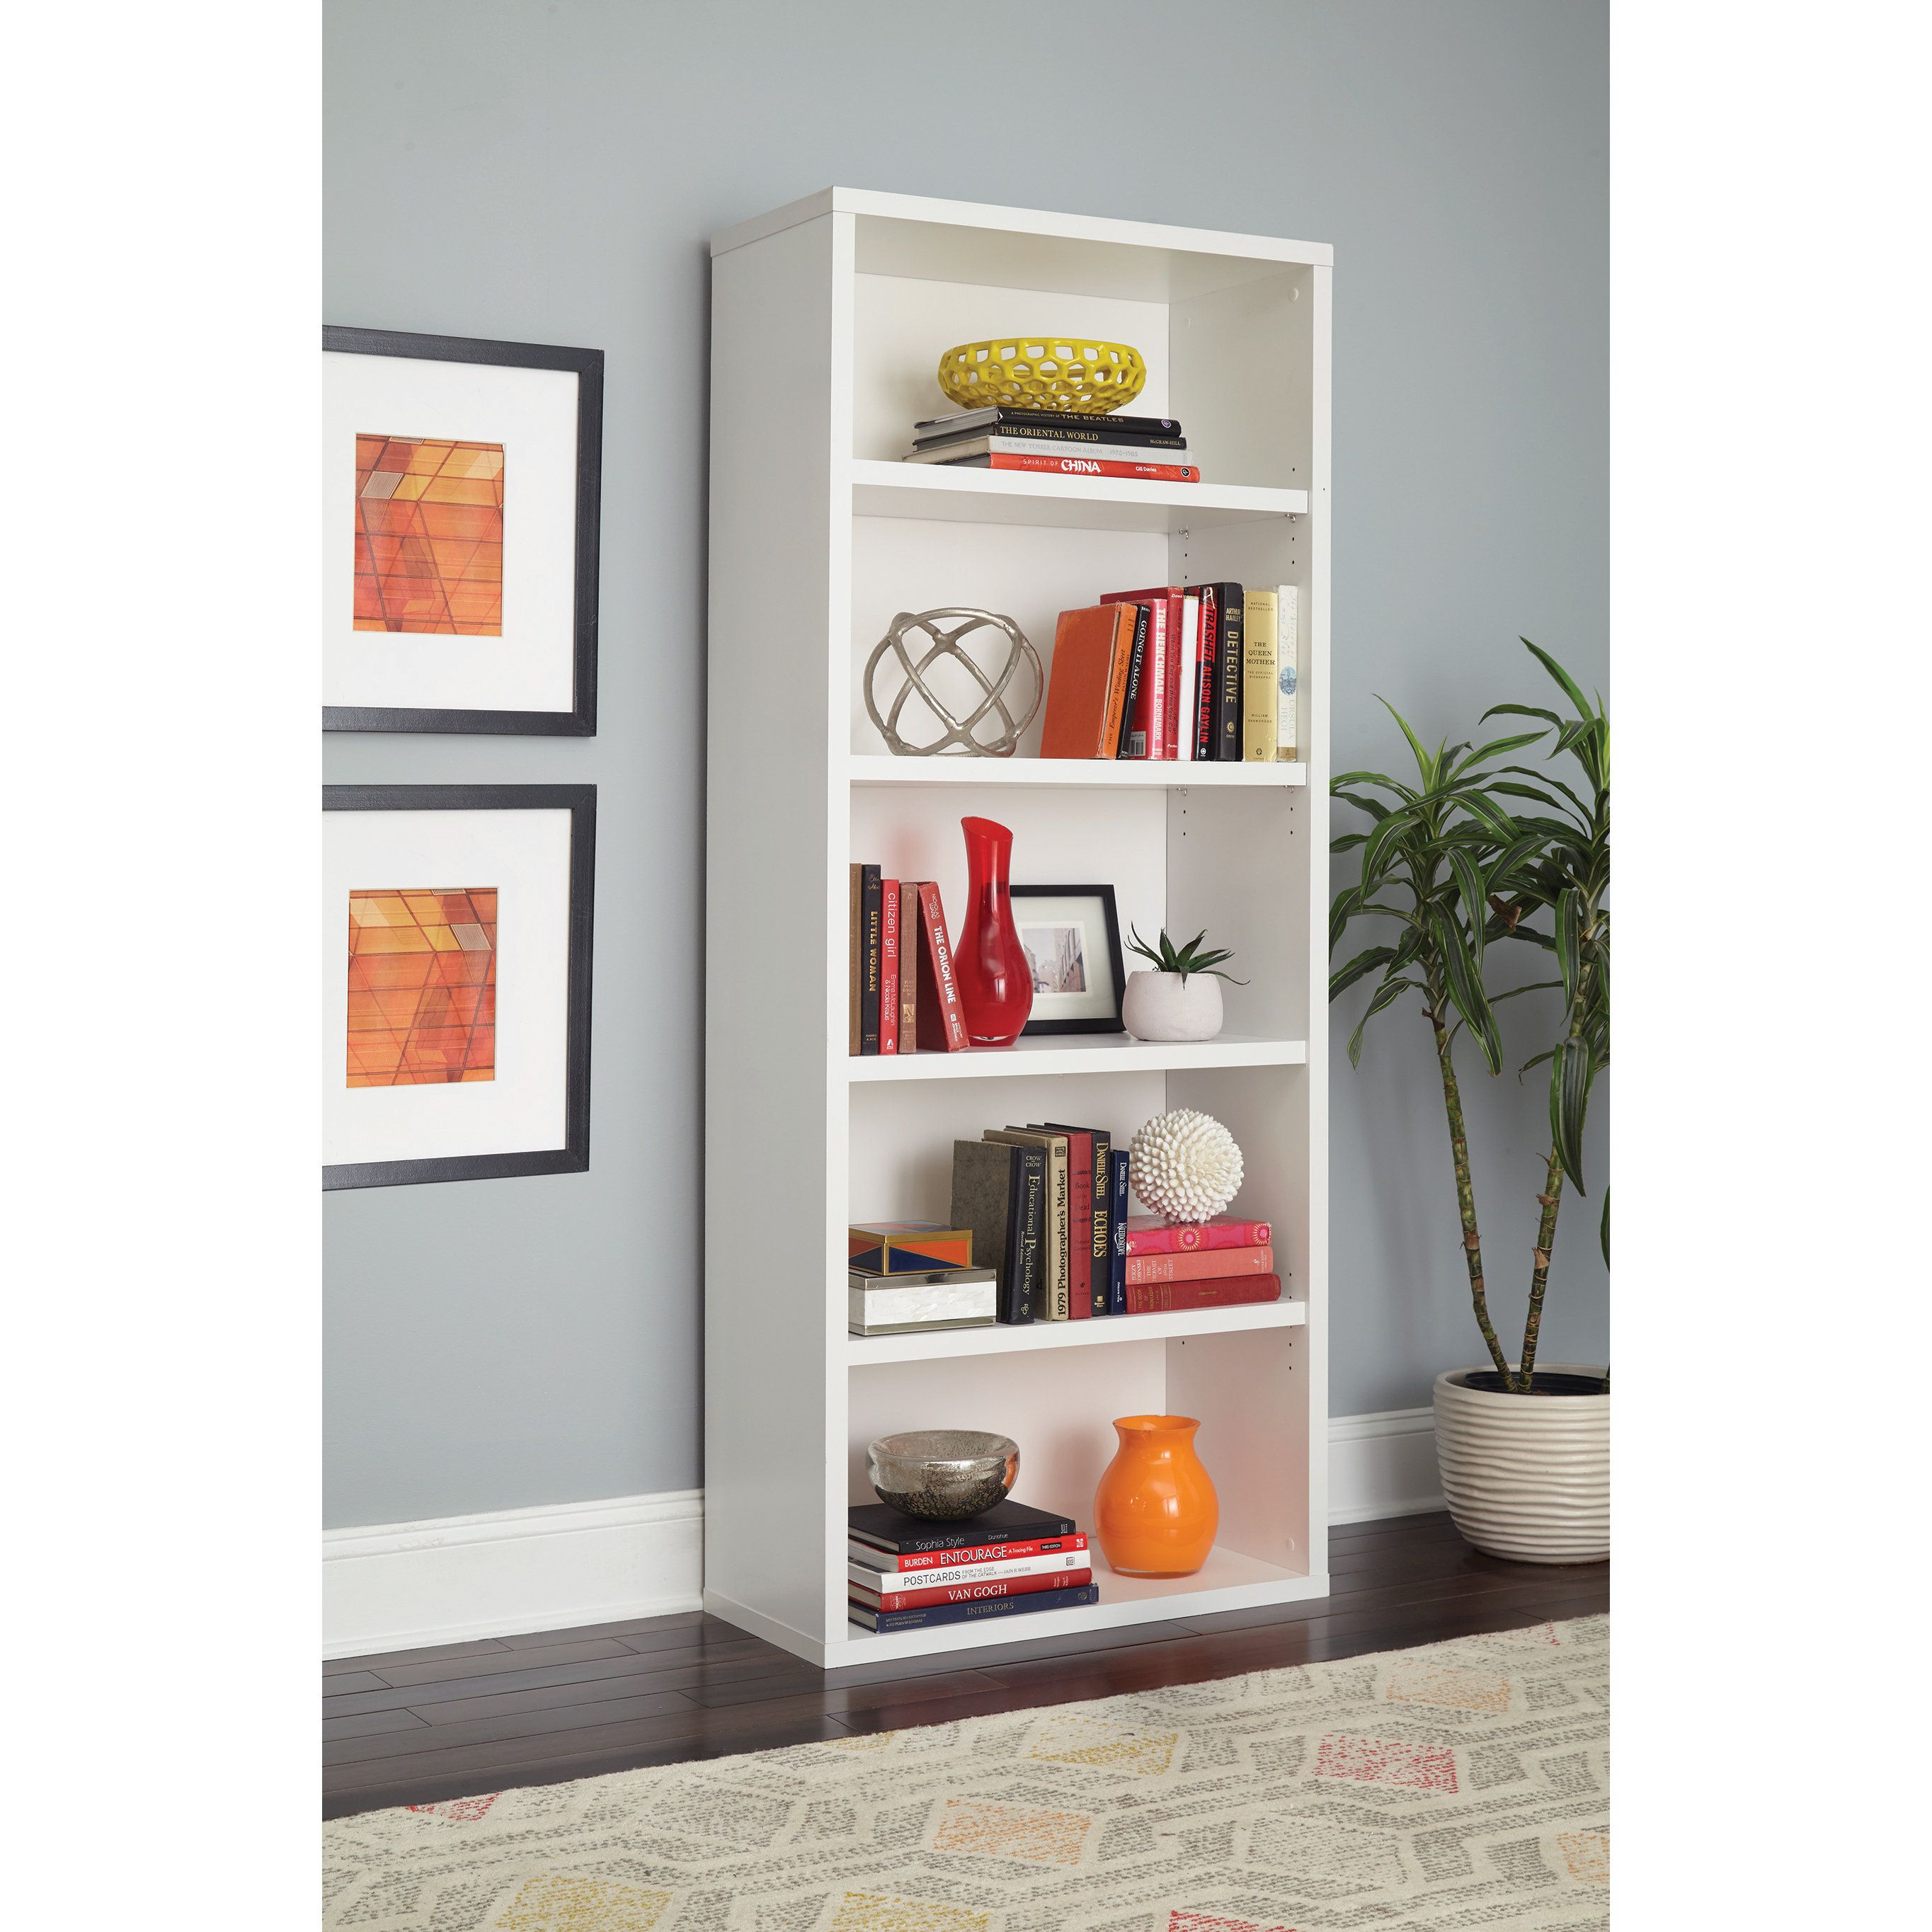 bookcases decorative furniture e q pcok bookcase home shelving shelves corner co unit